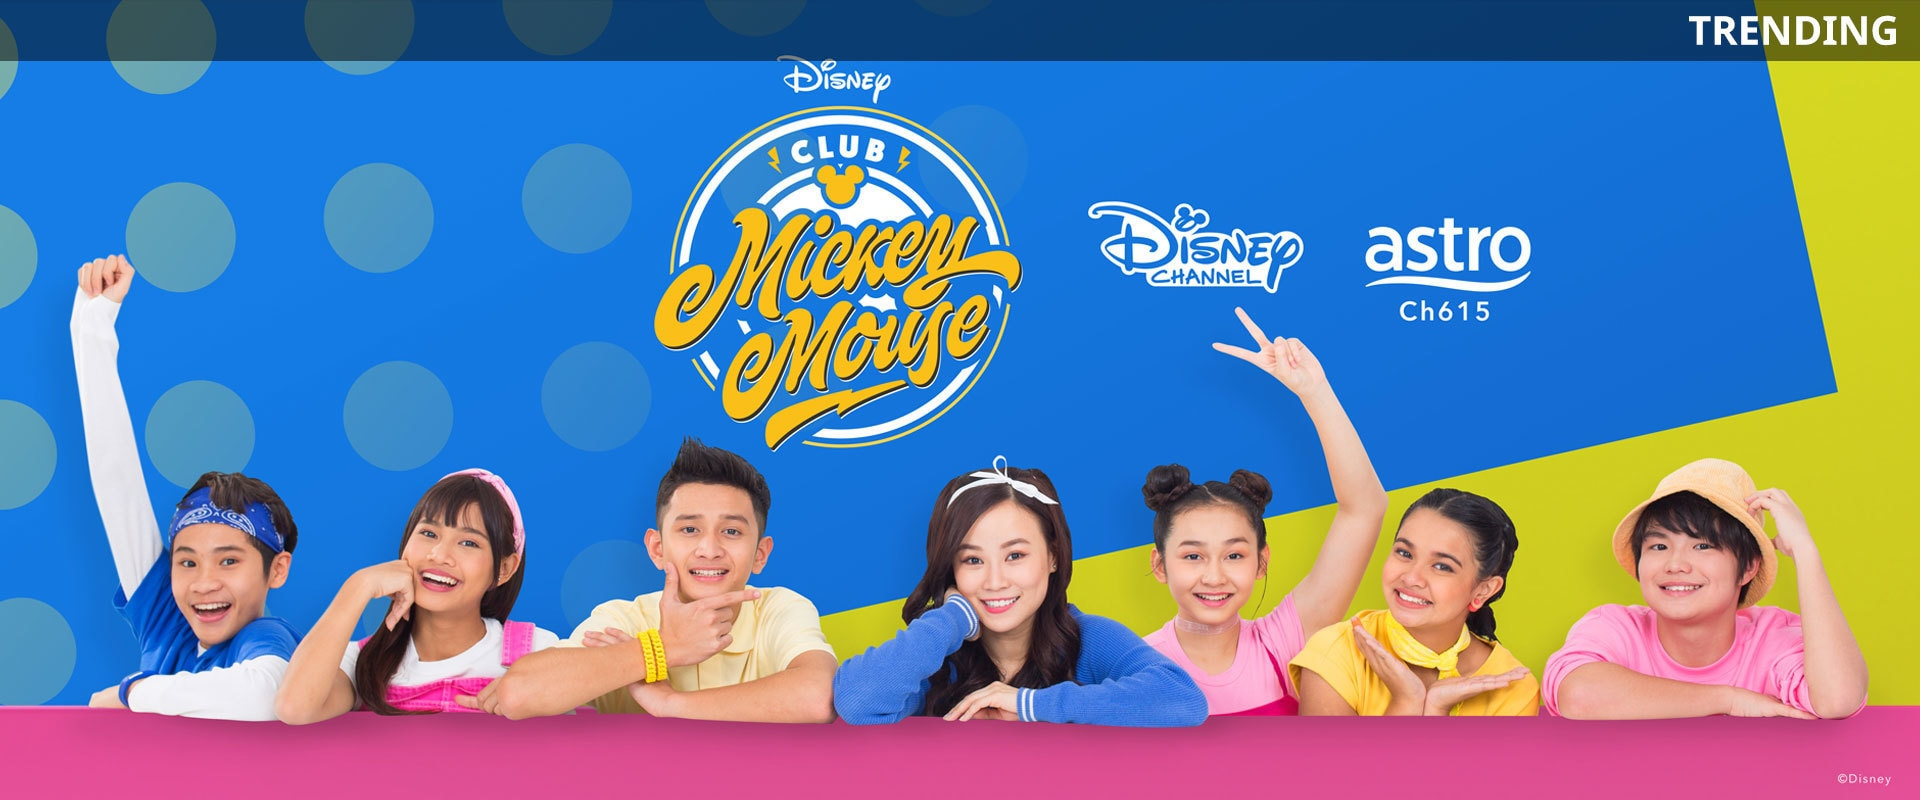 Club Mickey Mouse | TV | Trending